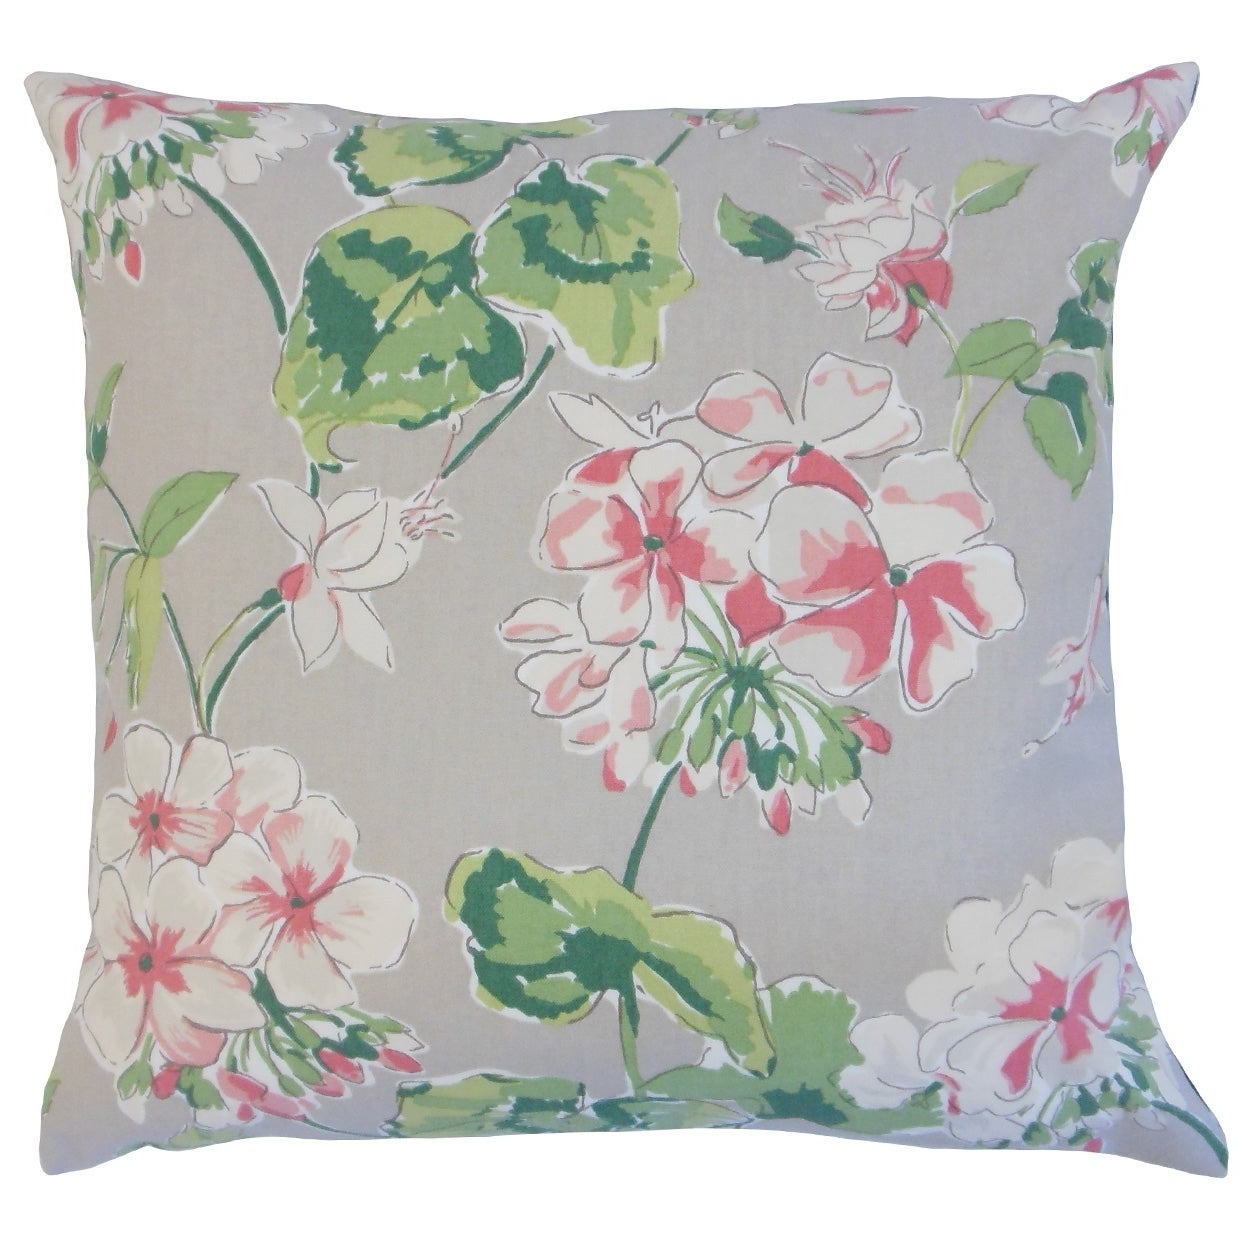 Newest Shop Set Of 2 Kaelin Floral Throw Pillows In Celadon – Free Shipping Regarding Kaelin 5 Piece Dining Sets (View 19 of 25)